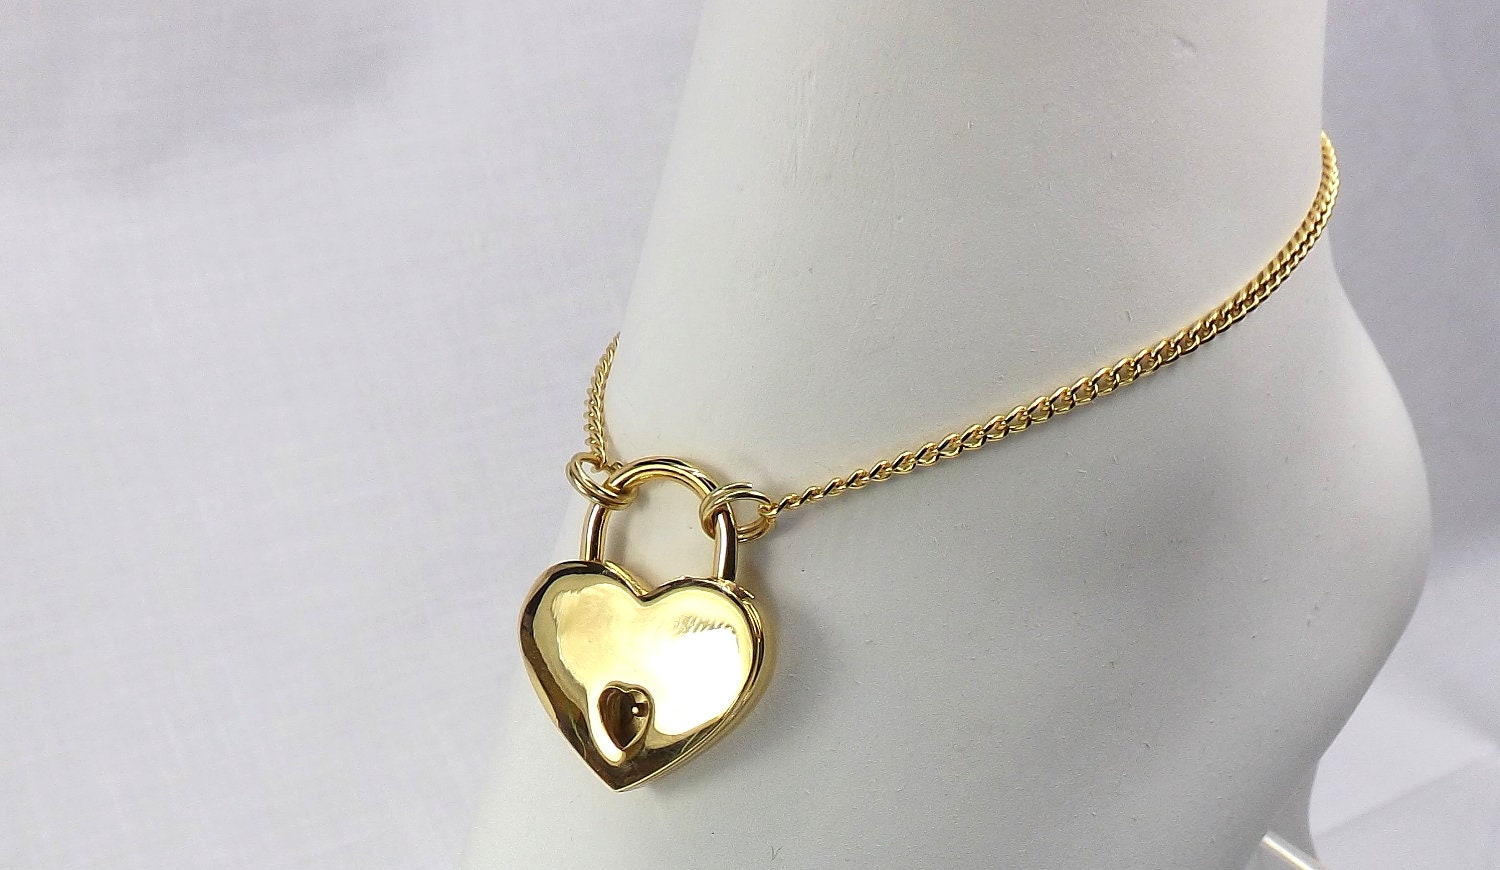 Gold Heart Lock anklet bdsm jewelrygift for her submissive ankle bracelet locking jewelry - product image